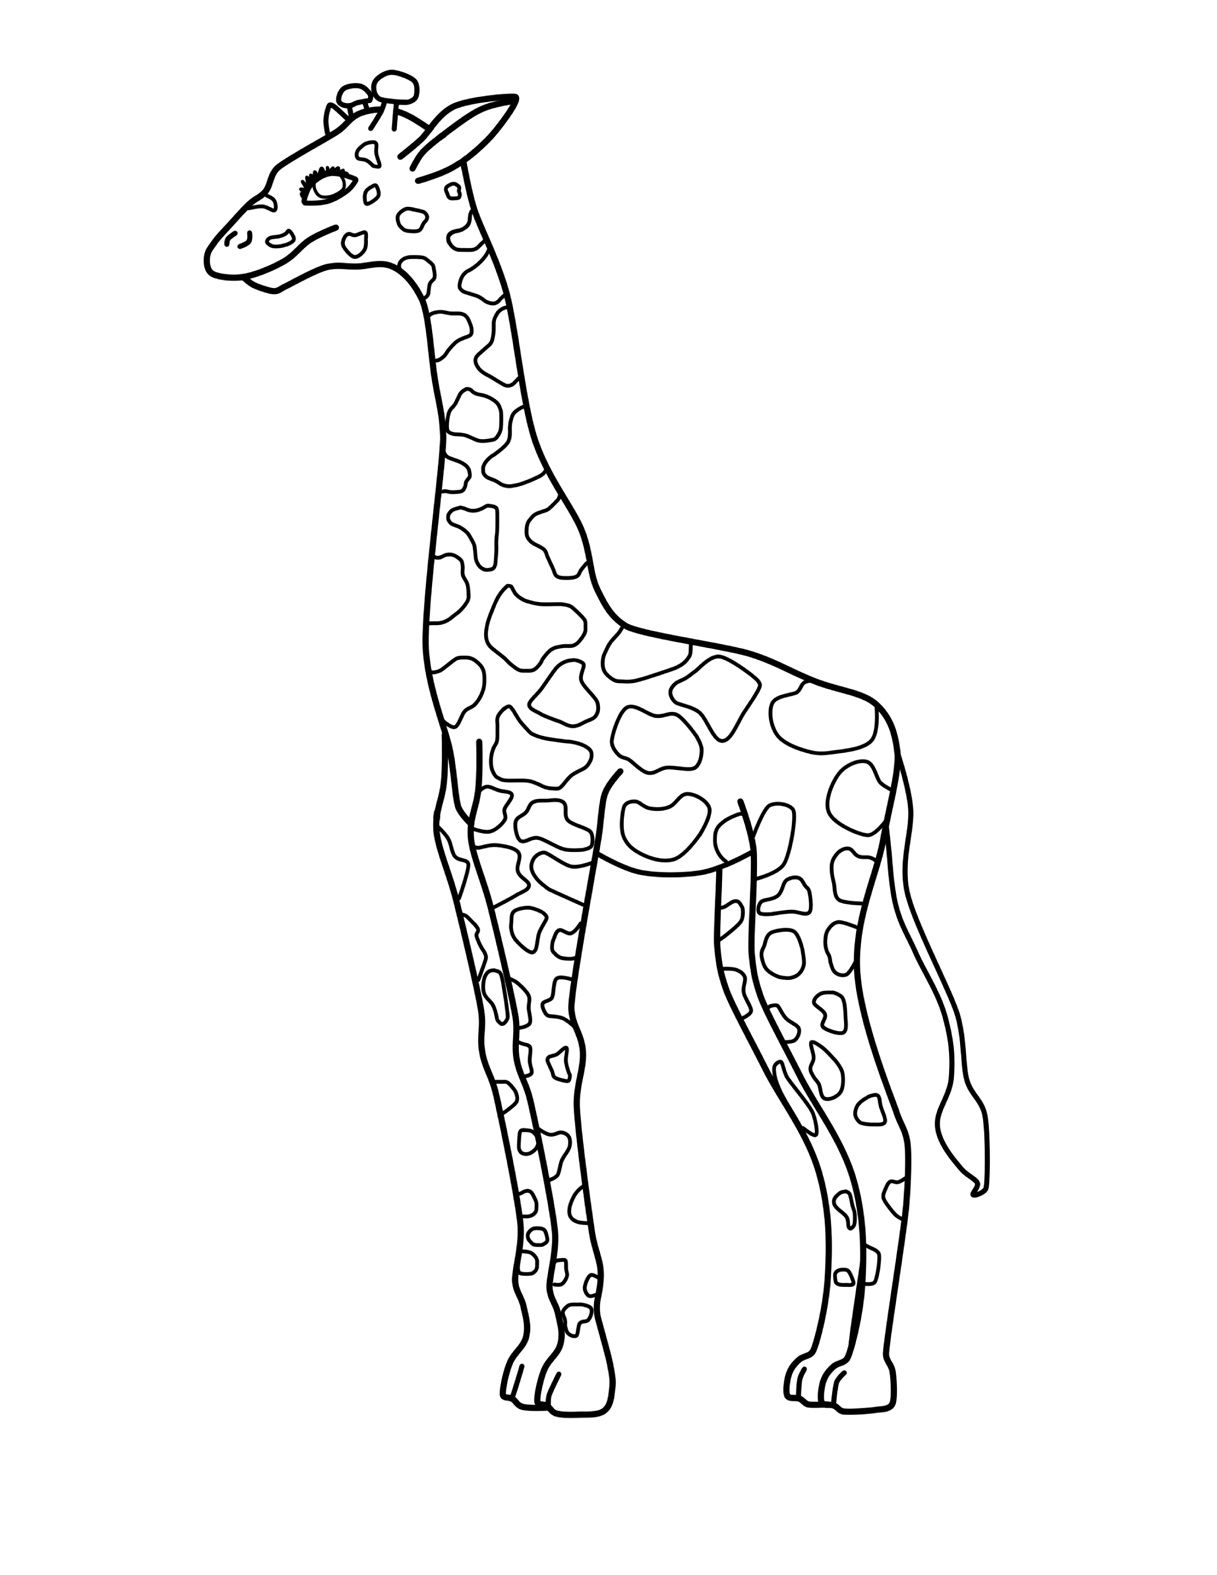 giraffe coloring image coloring pages for kids giraffe coloring pages for kids image giraffe coloring